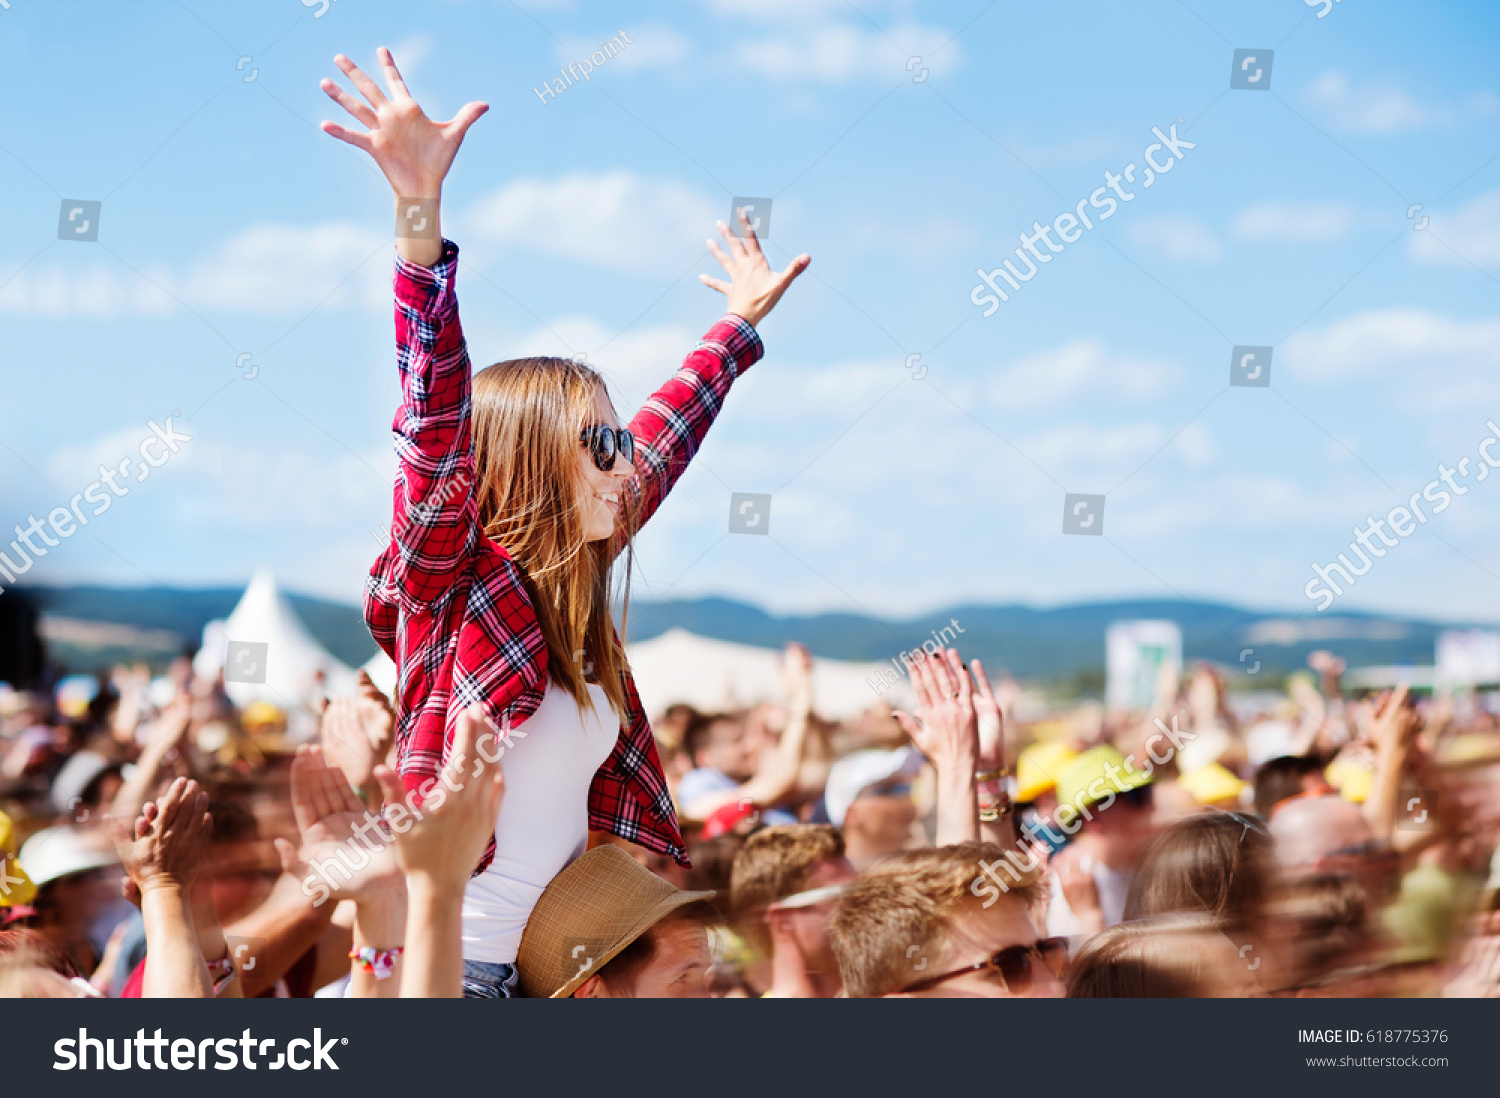 Teenagers at summer music festival enjoying themselves #618775376